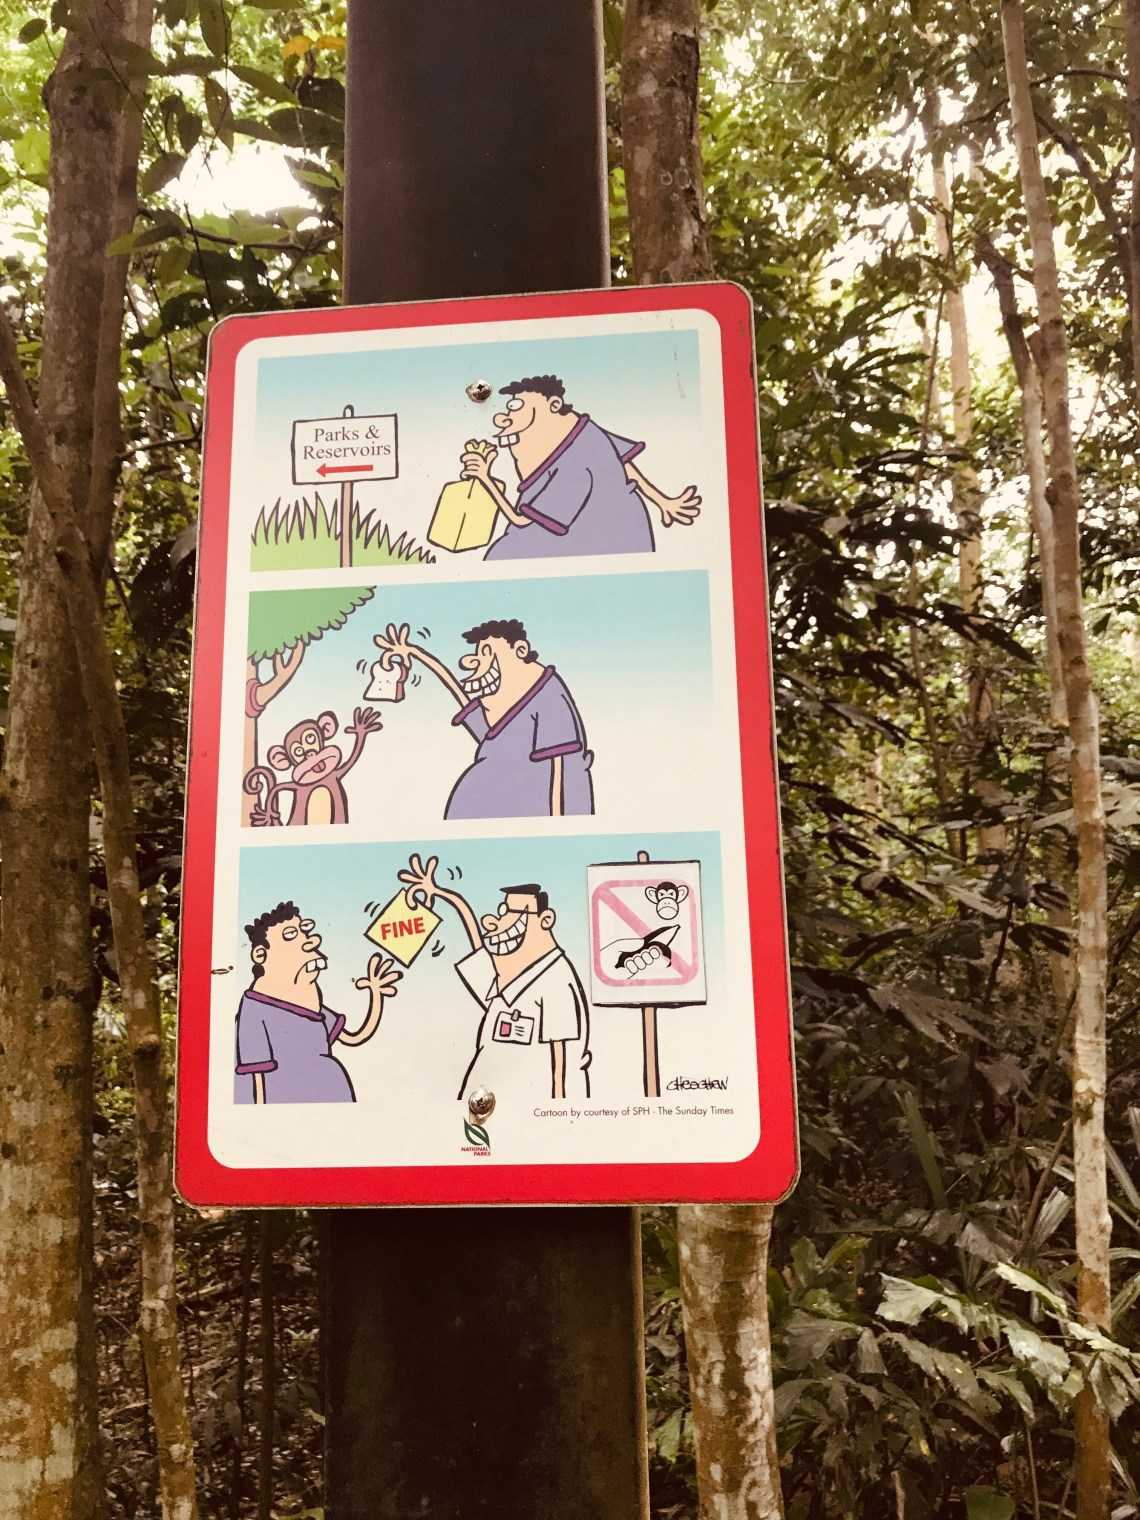 Comedy at Bukit Timah trail